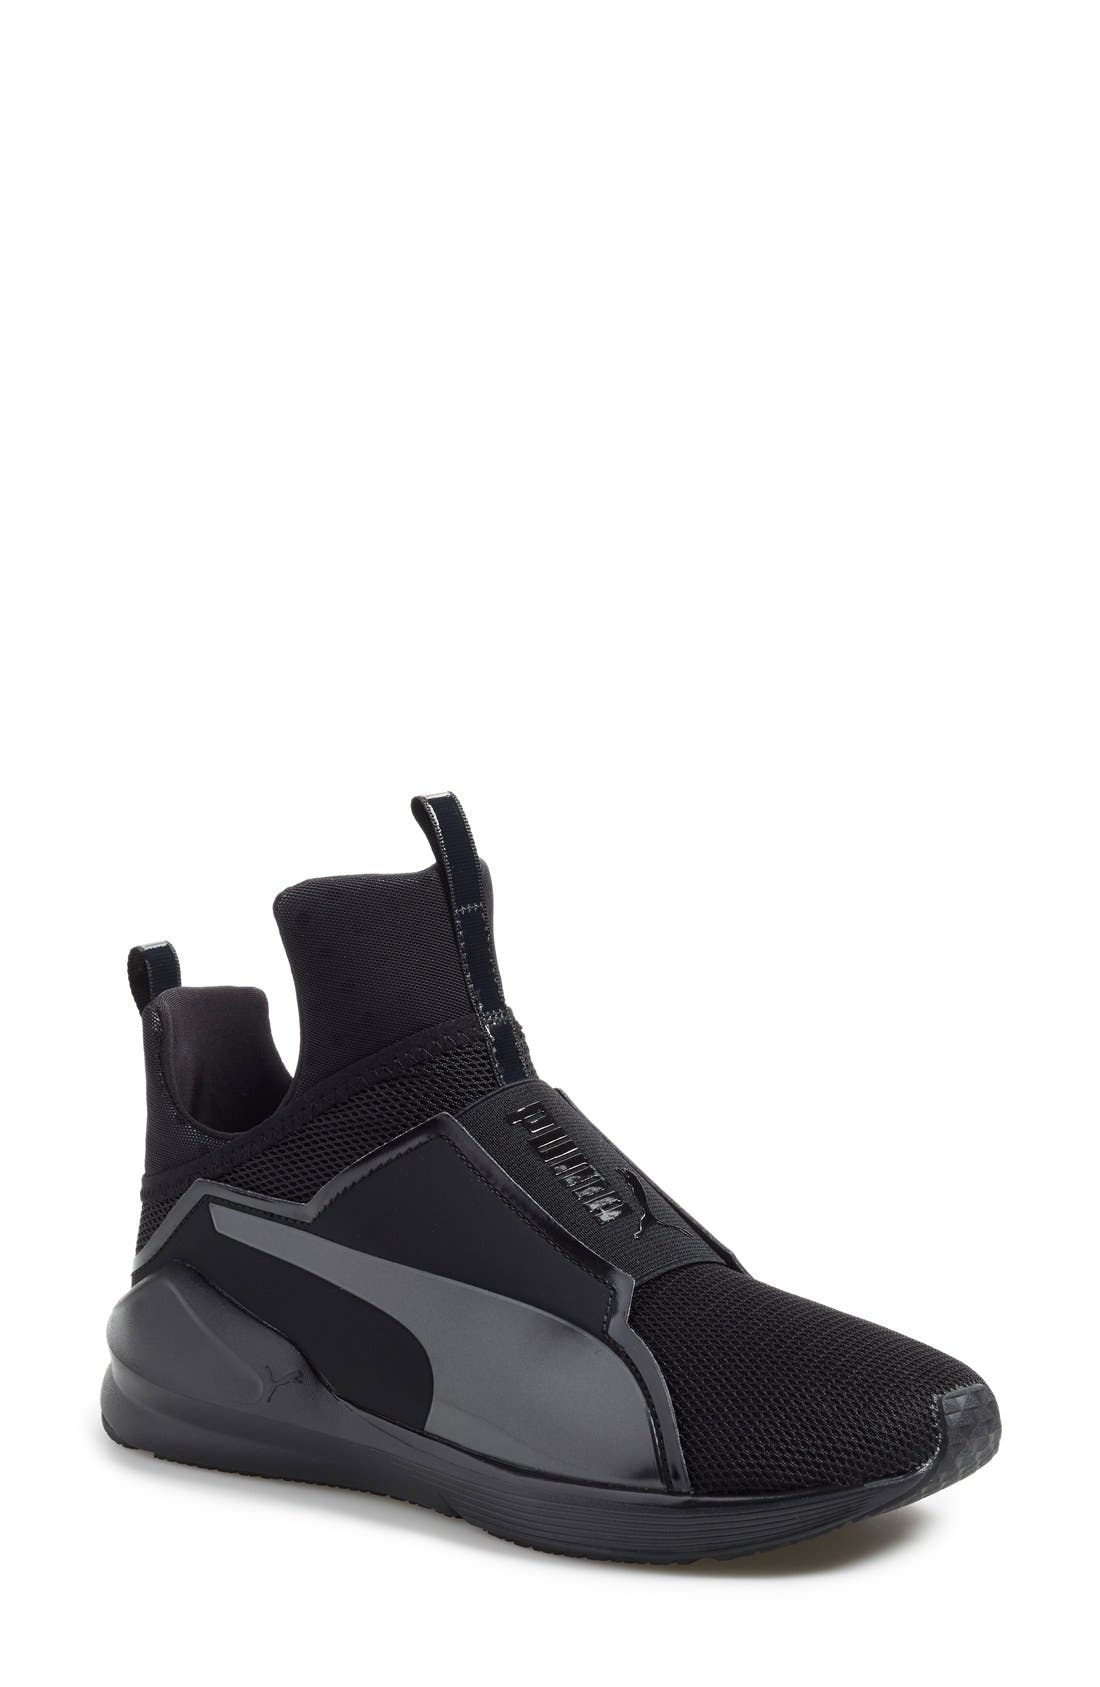 'Fierce Core' High Top Sneaker,                             Main thumbnail 1, color,                             001